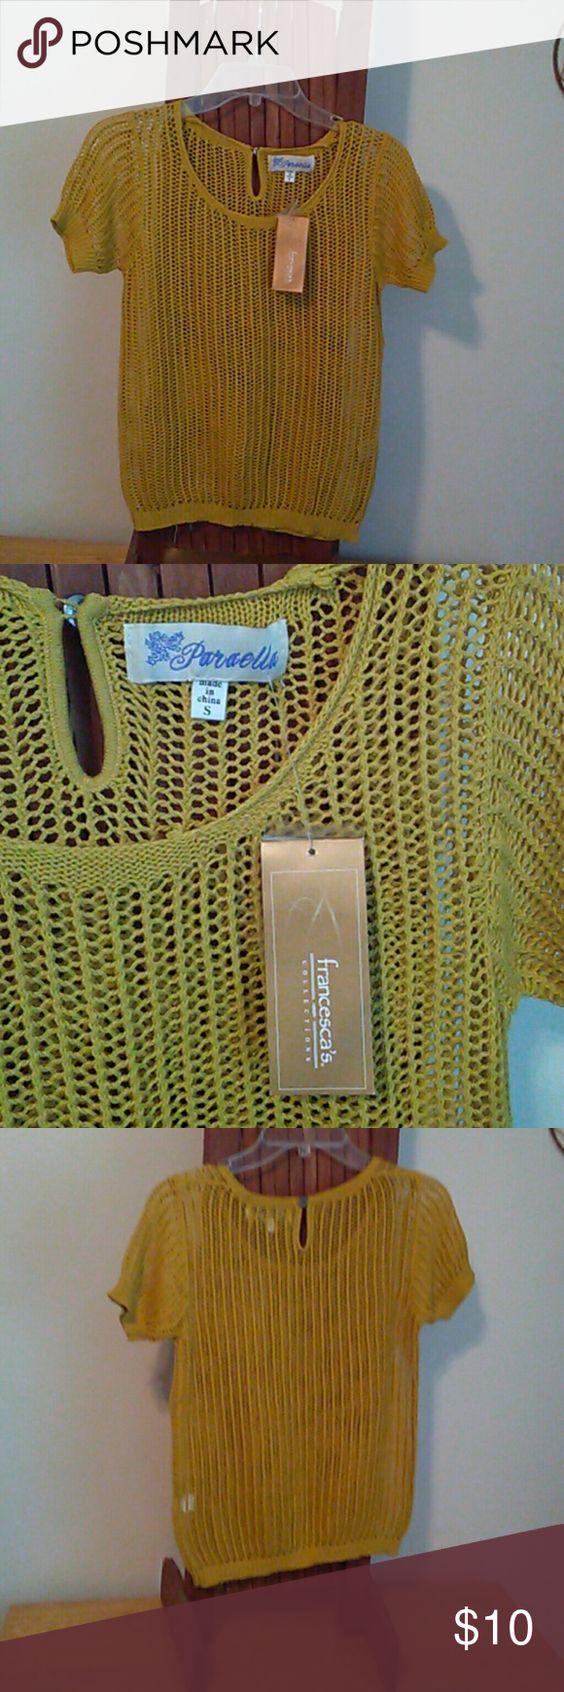 NWT OVERLAY TOP S/Very nice yellow open knit top.  100% cotton comes with extra button. Francesca's Collections Tops